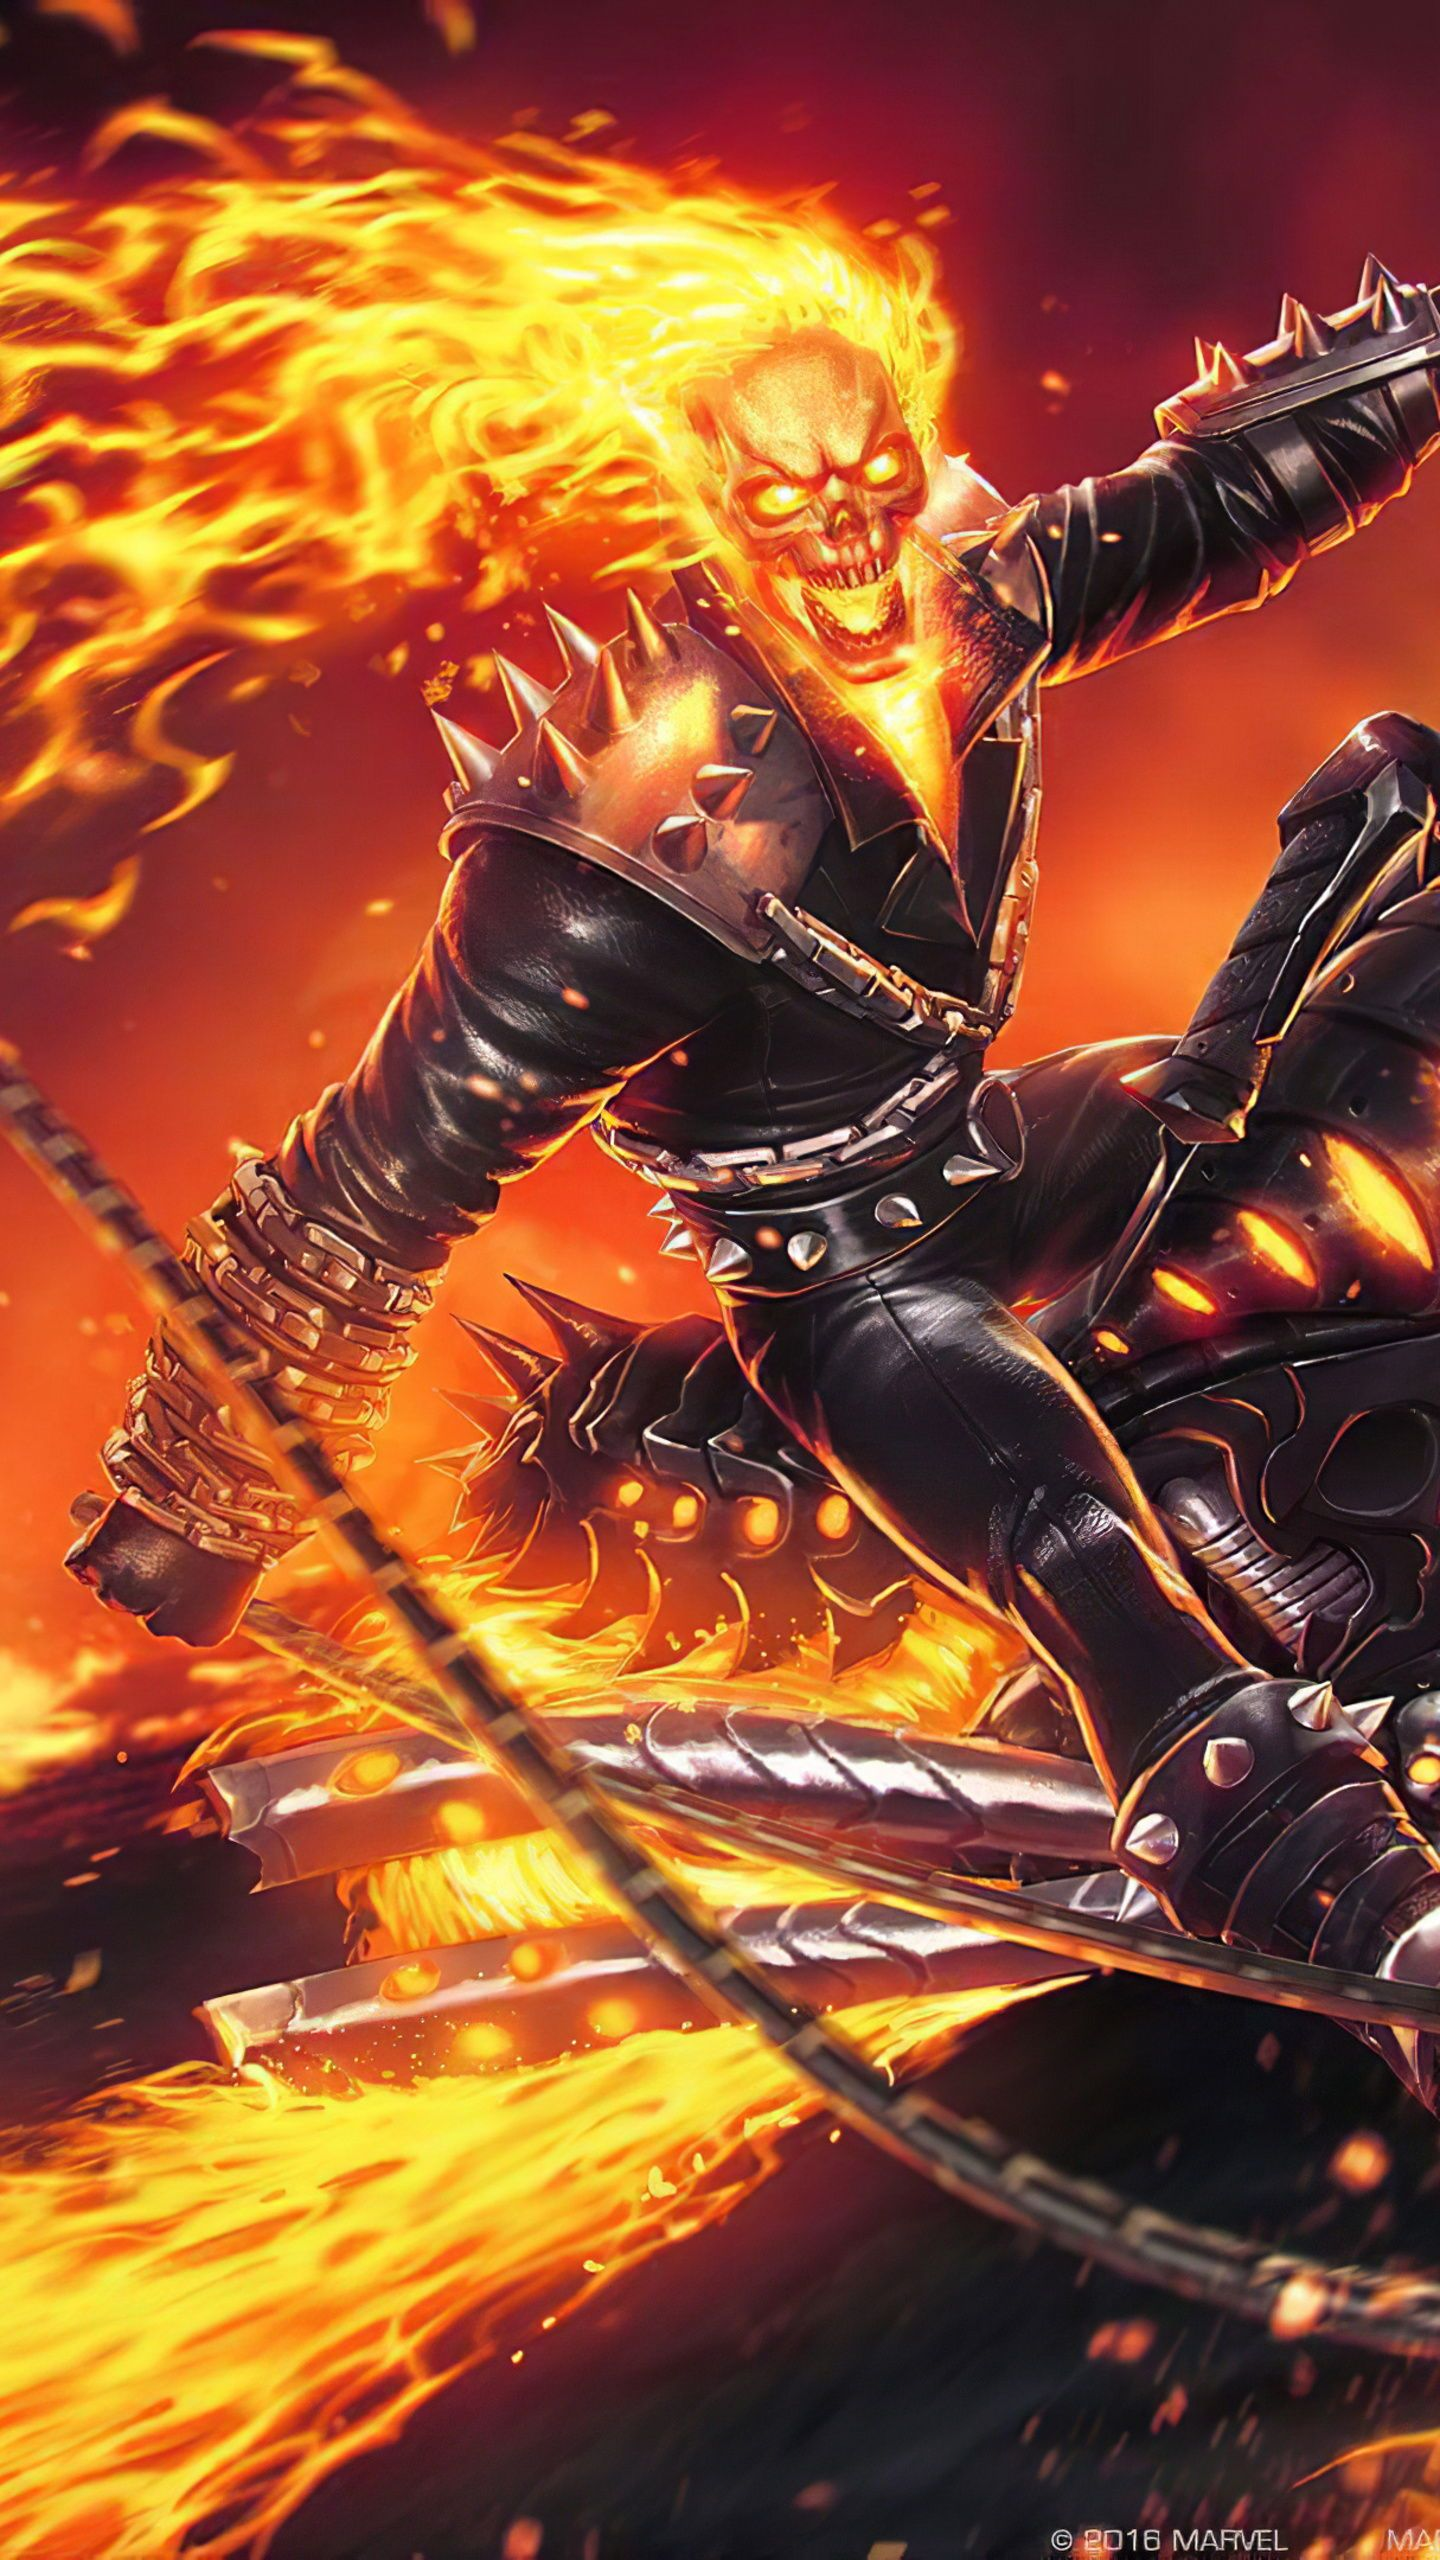 Download Hd Wallpapers For Free Ghost Rider Wallpaper Ghost Rider Marvel Best Home Screen Wallpaper